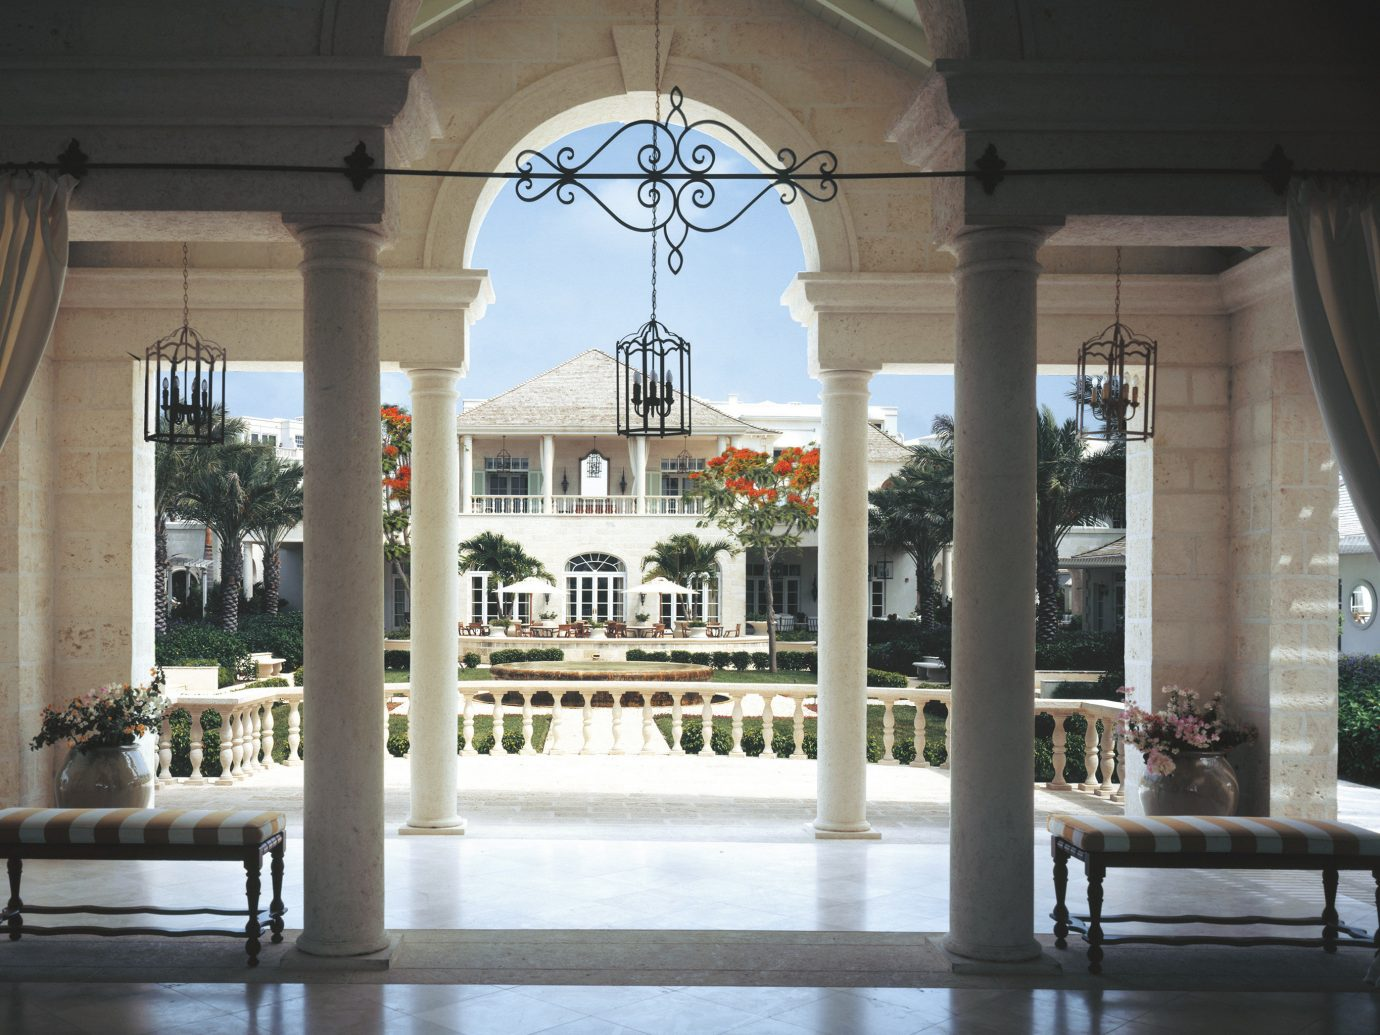 Hotels Romance building structure Architecture estate interior design column home tourist attraction palace window museum area court furniture colonnade